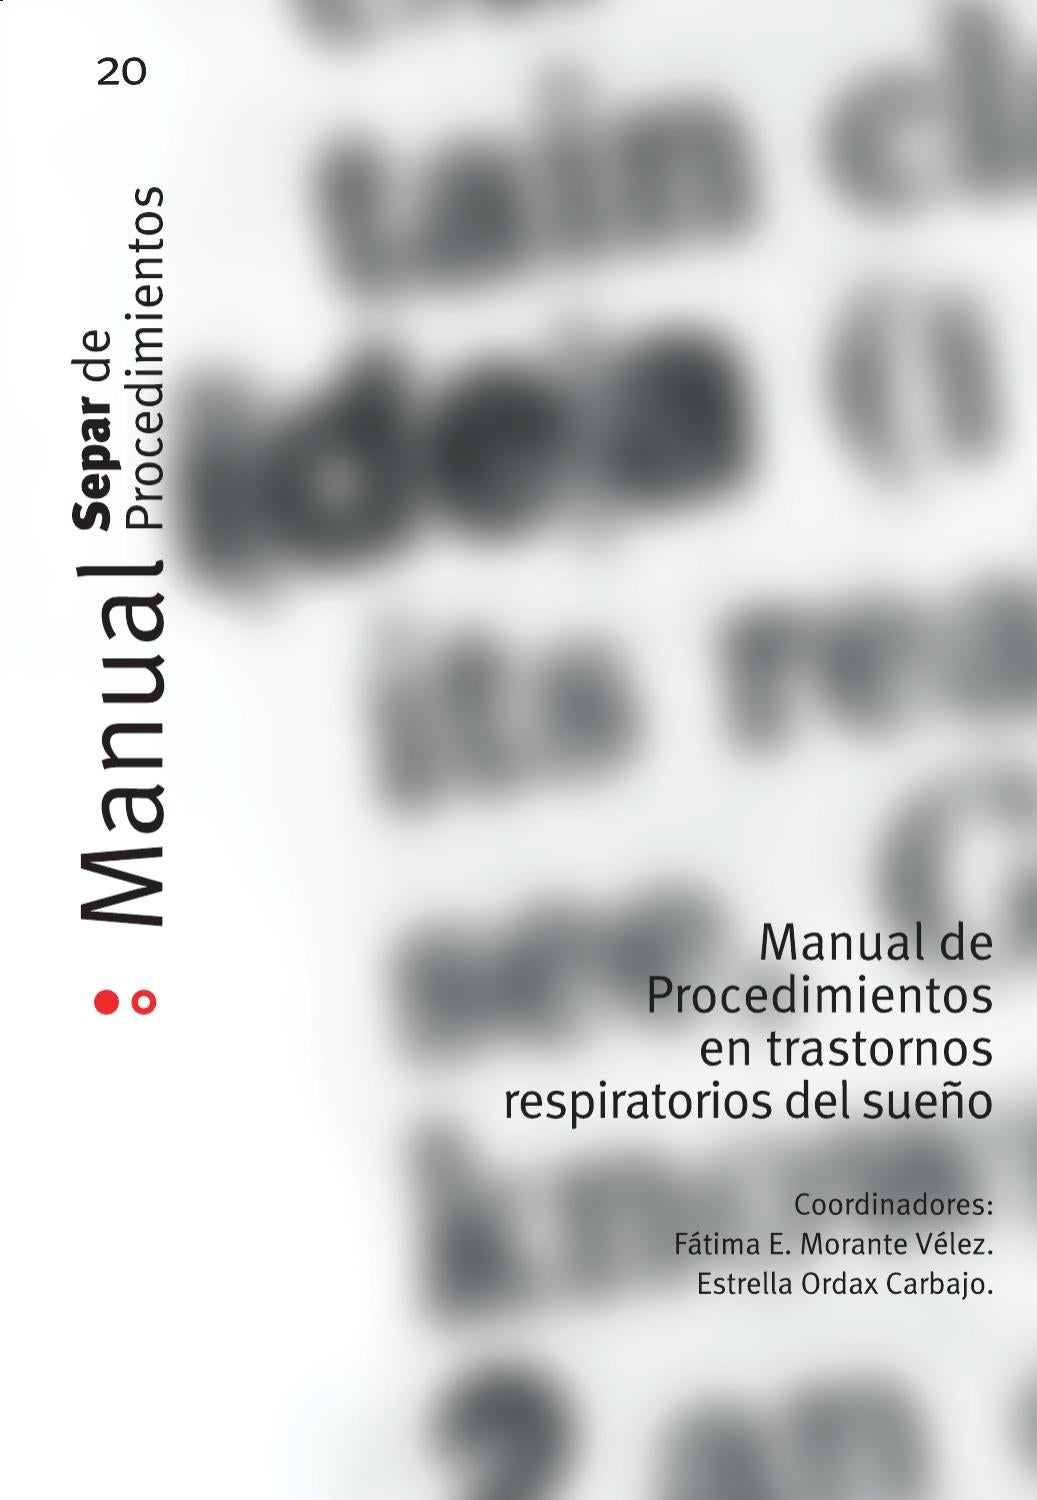 Manual de Procedimientos SEPAR, 20. by SEPAR - issuu